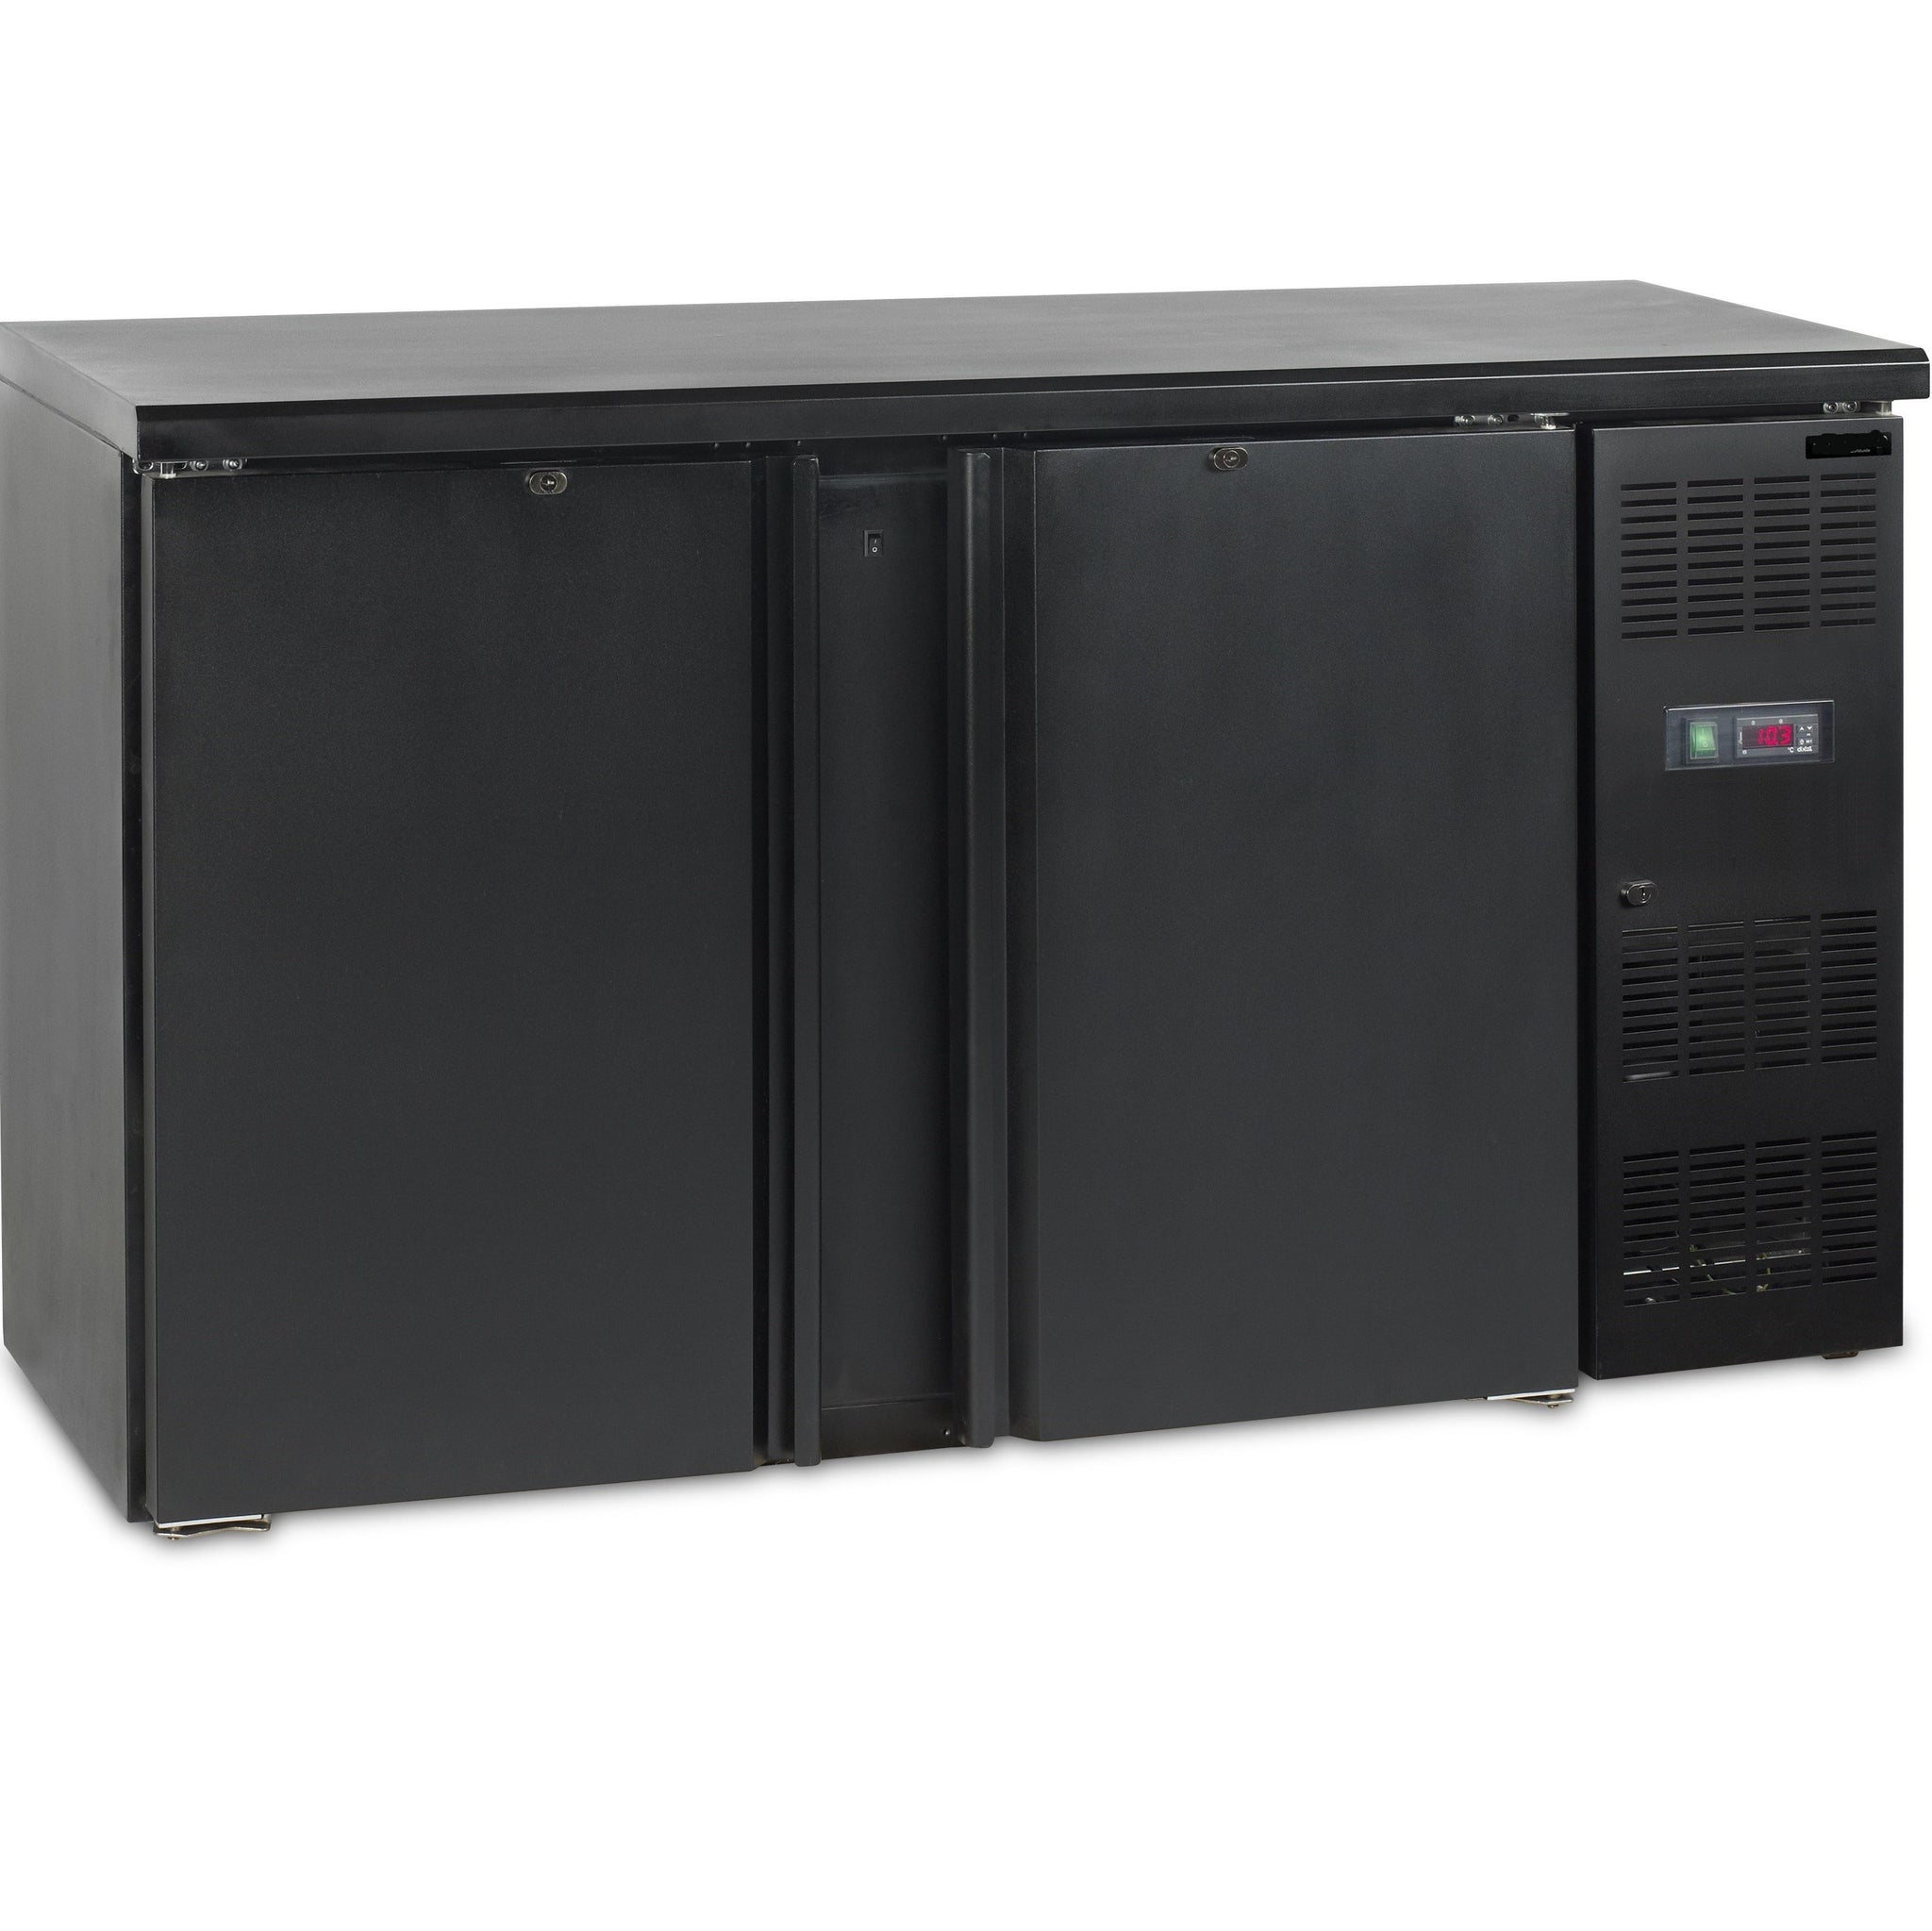 Tefcold backbar cbc210-p heavy duty